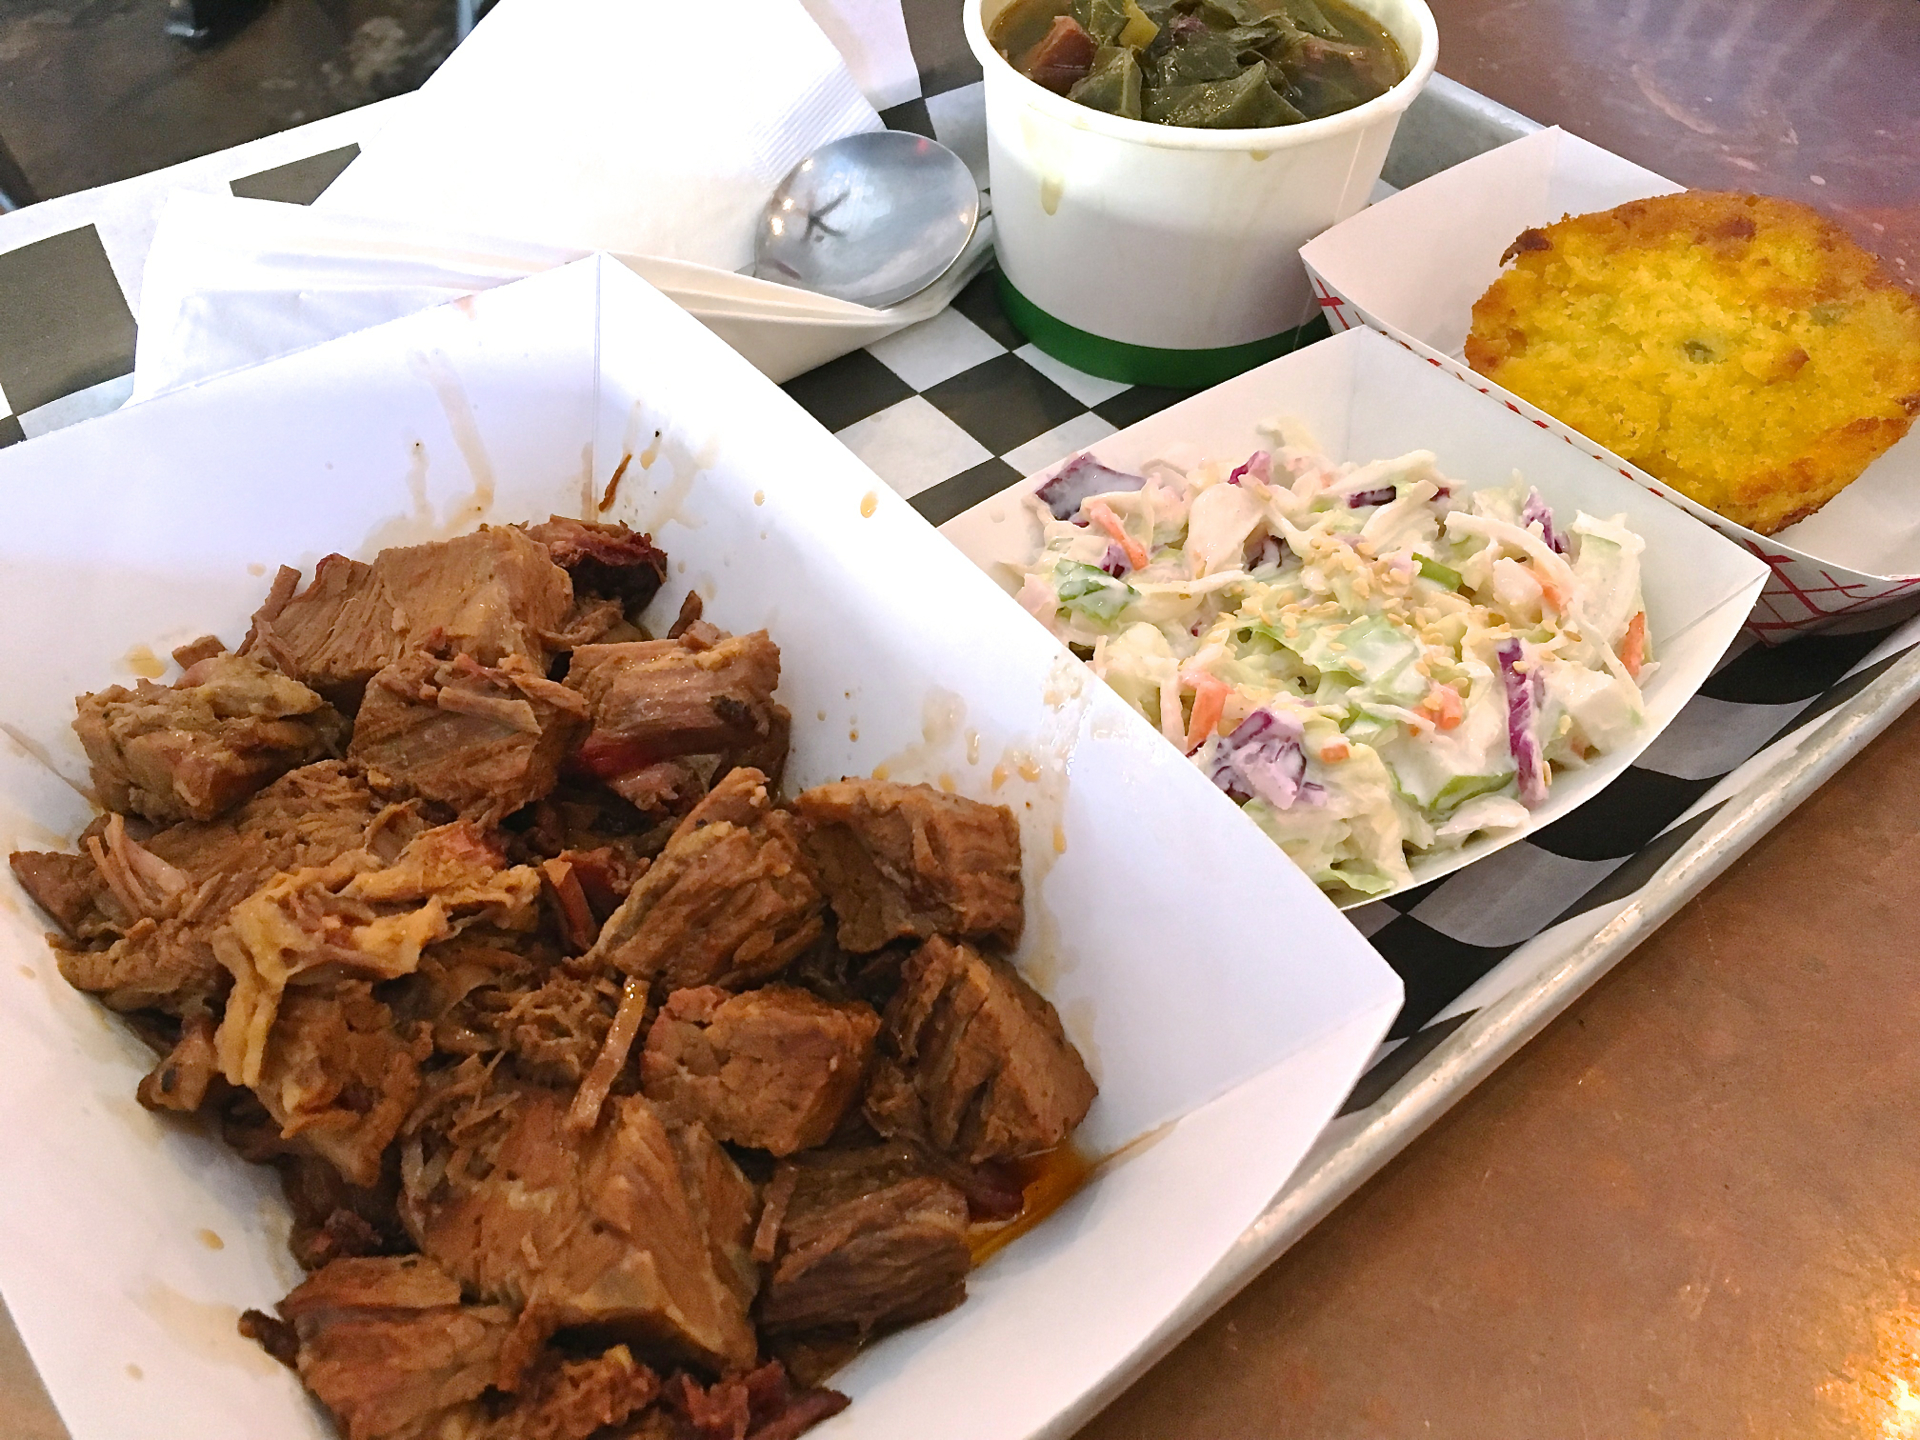 The chopped brisket tray with coleslaw, cornbread and collard greens.